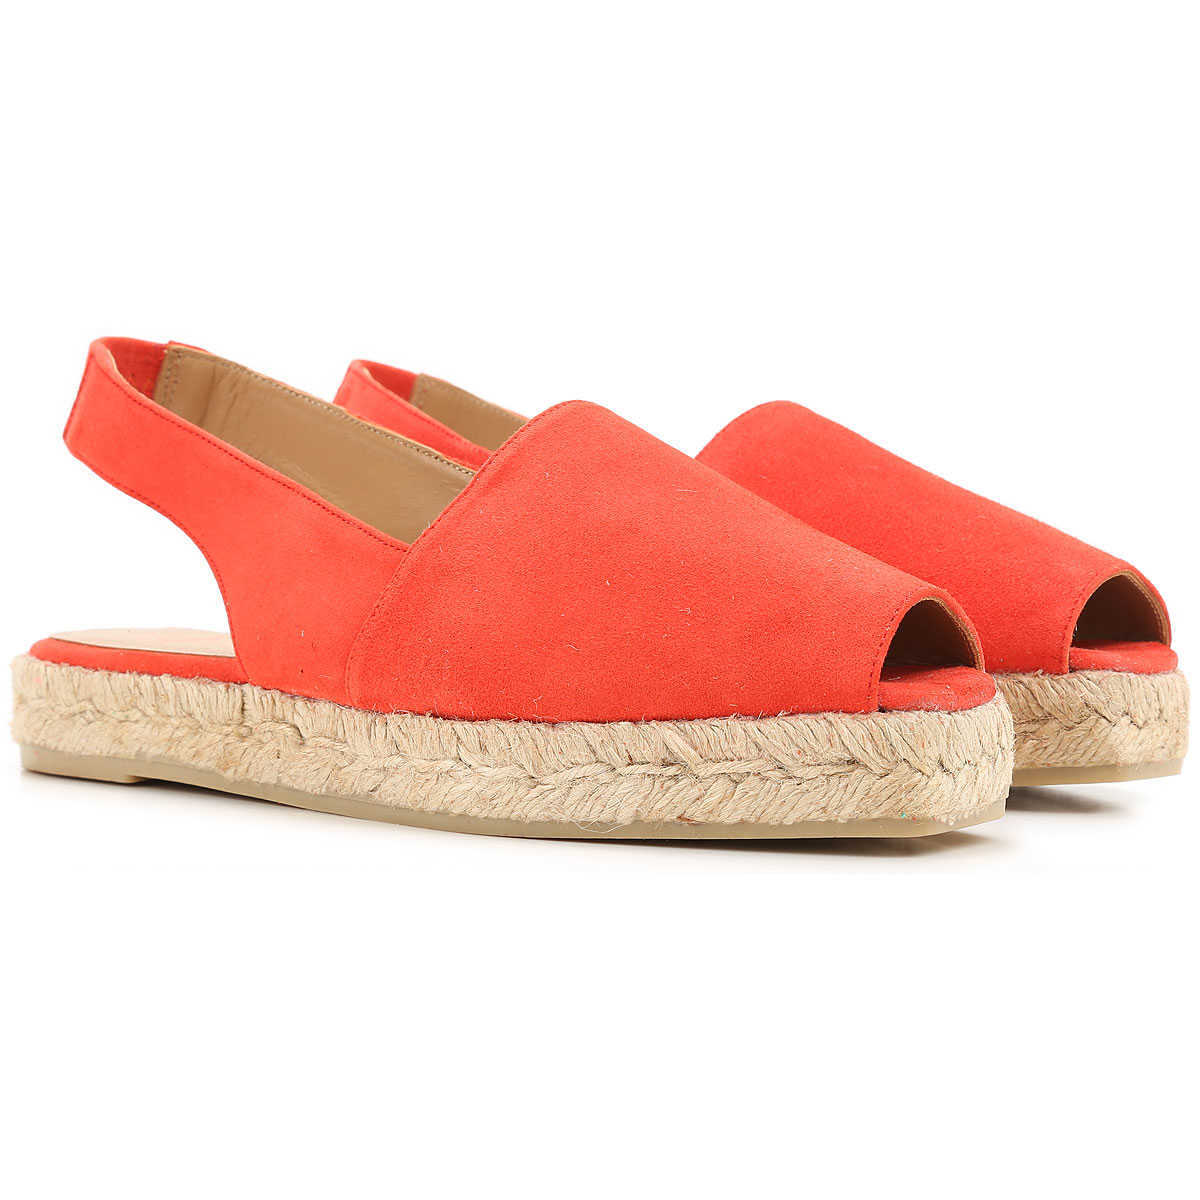 Castaner Wedges for Women in Outlet Red Canada - GOOFASH - Womens HOUSE SHOES